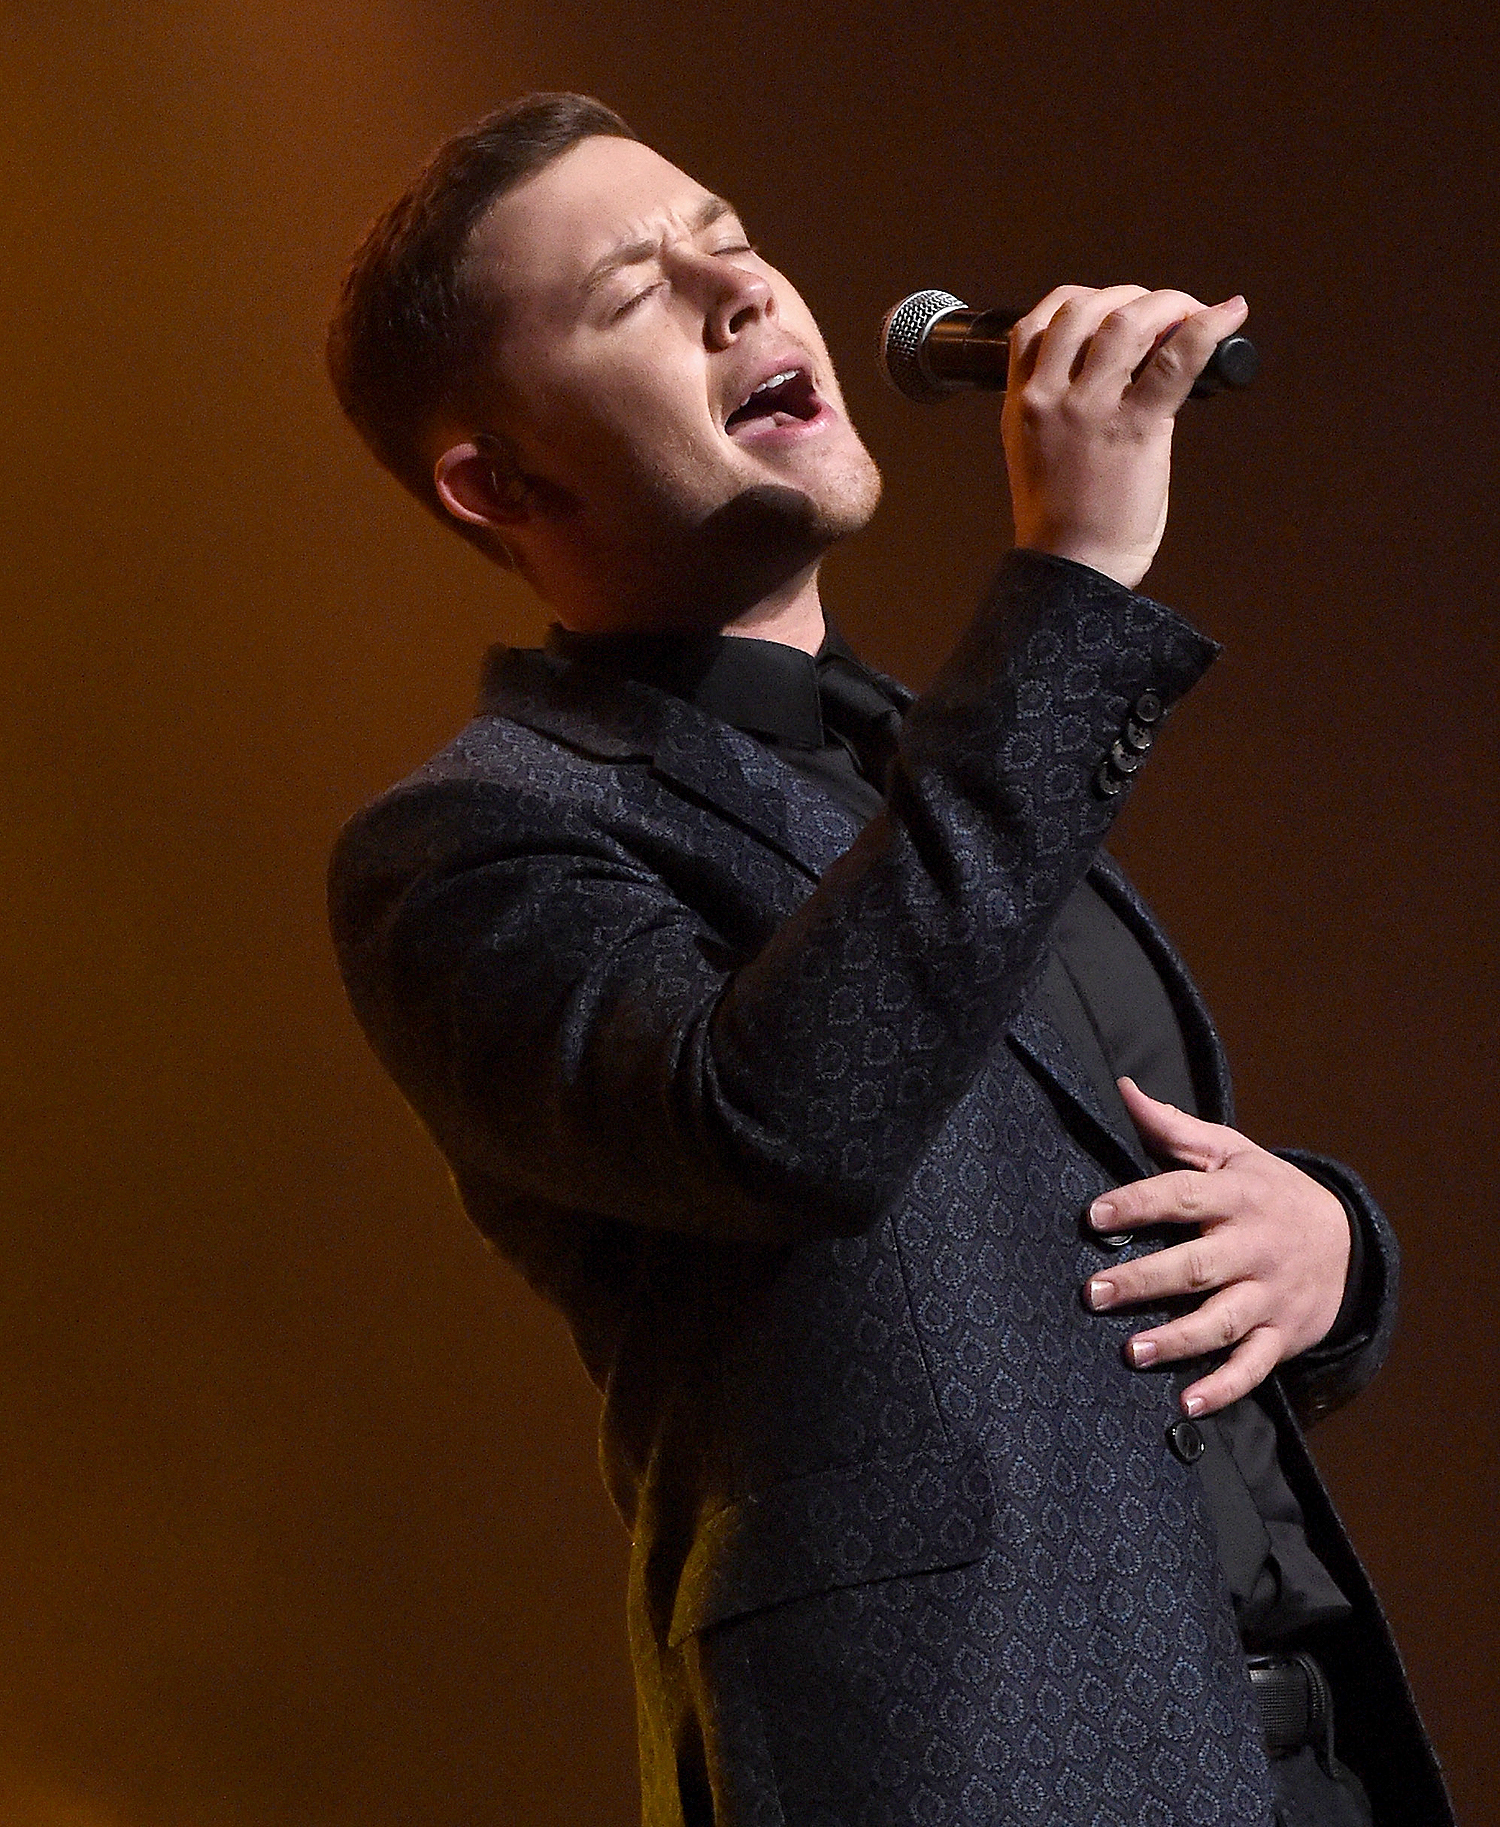 NASHVILLE, TN - FEBRUARY 08: Scotty McCreery performs during 1 Night. 1 Place. 1 Time: A Heroes & Friends Tribute to Randy Travis at Bridgestone Arena on February 8, 2017 in Nashville, Tennessee. (Photo by Rick Diamond/Getty Images for Outback Concerts)